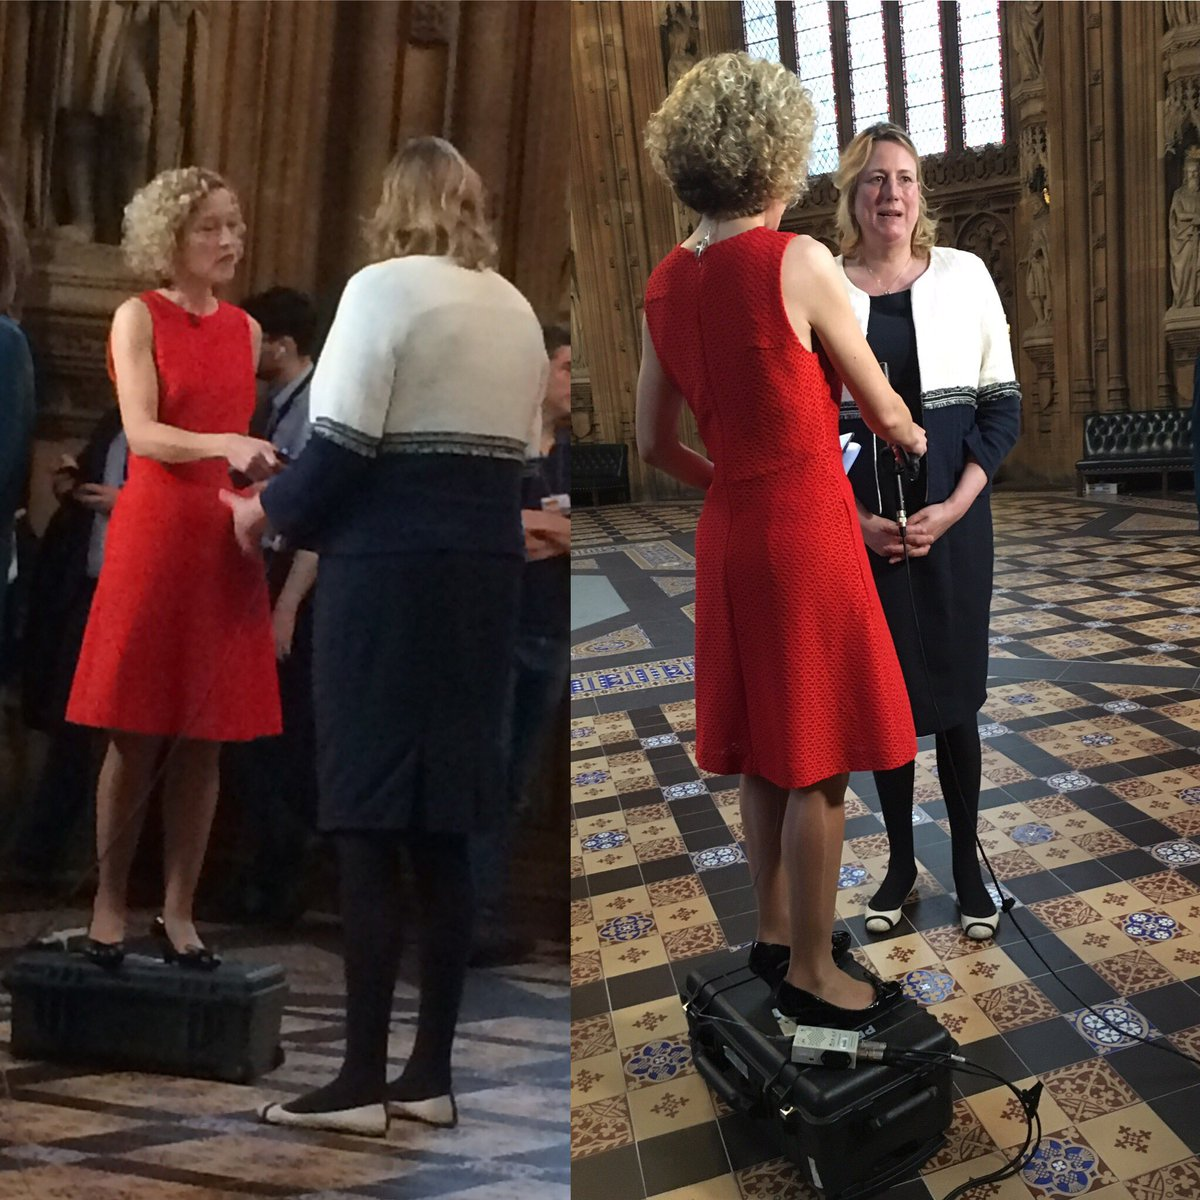 Had to resort to desperate measures to interview the very tall @Sandbach ! Grateful I could dispense with the box for my next guest @sajidjavid #conservativeleadership #C4News